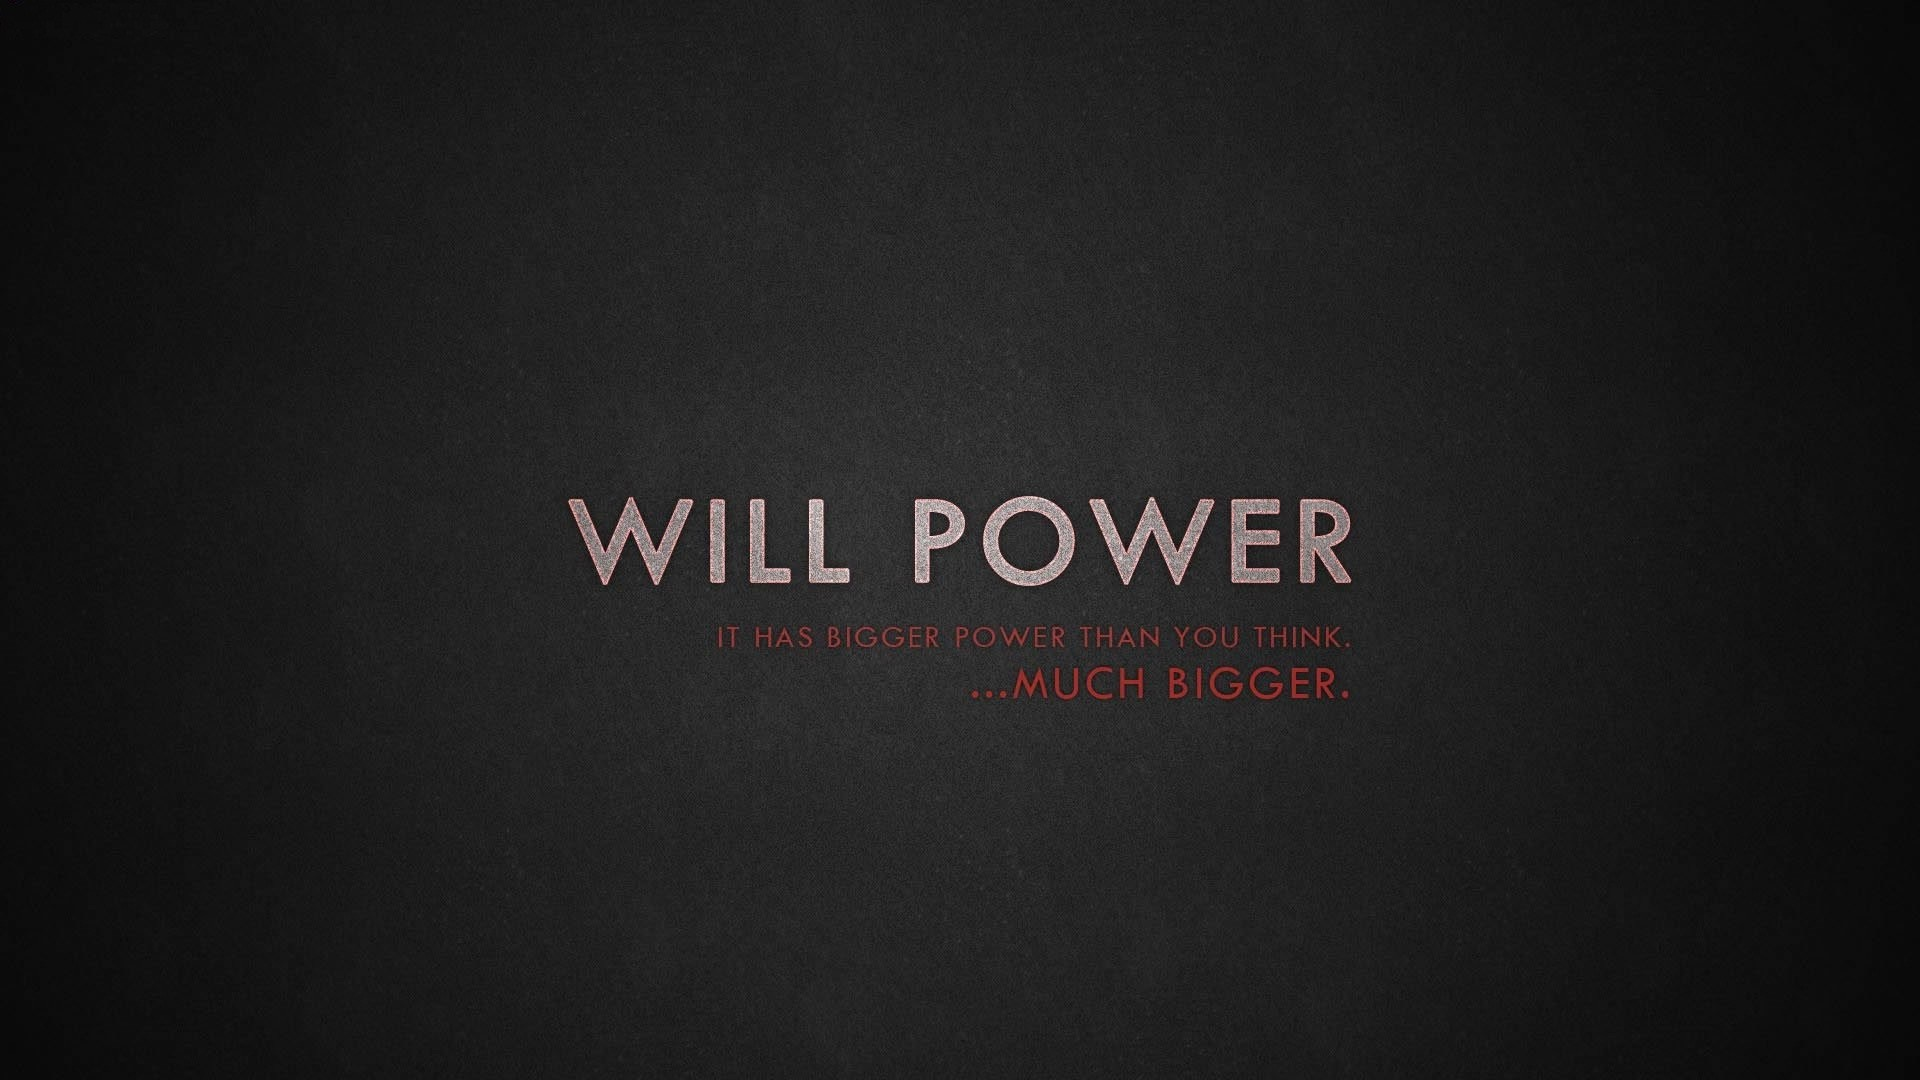 1920x1080 Will power is the best success power motivational wallpapers